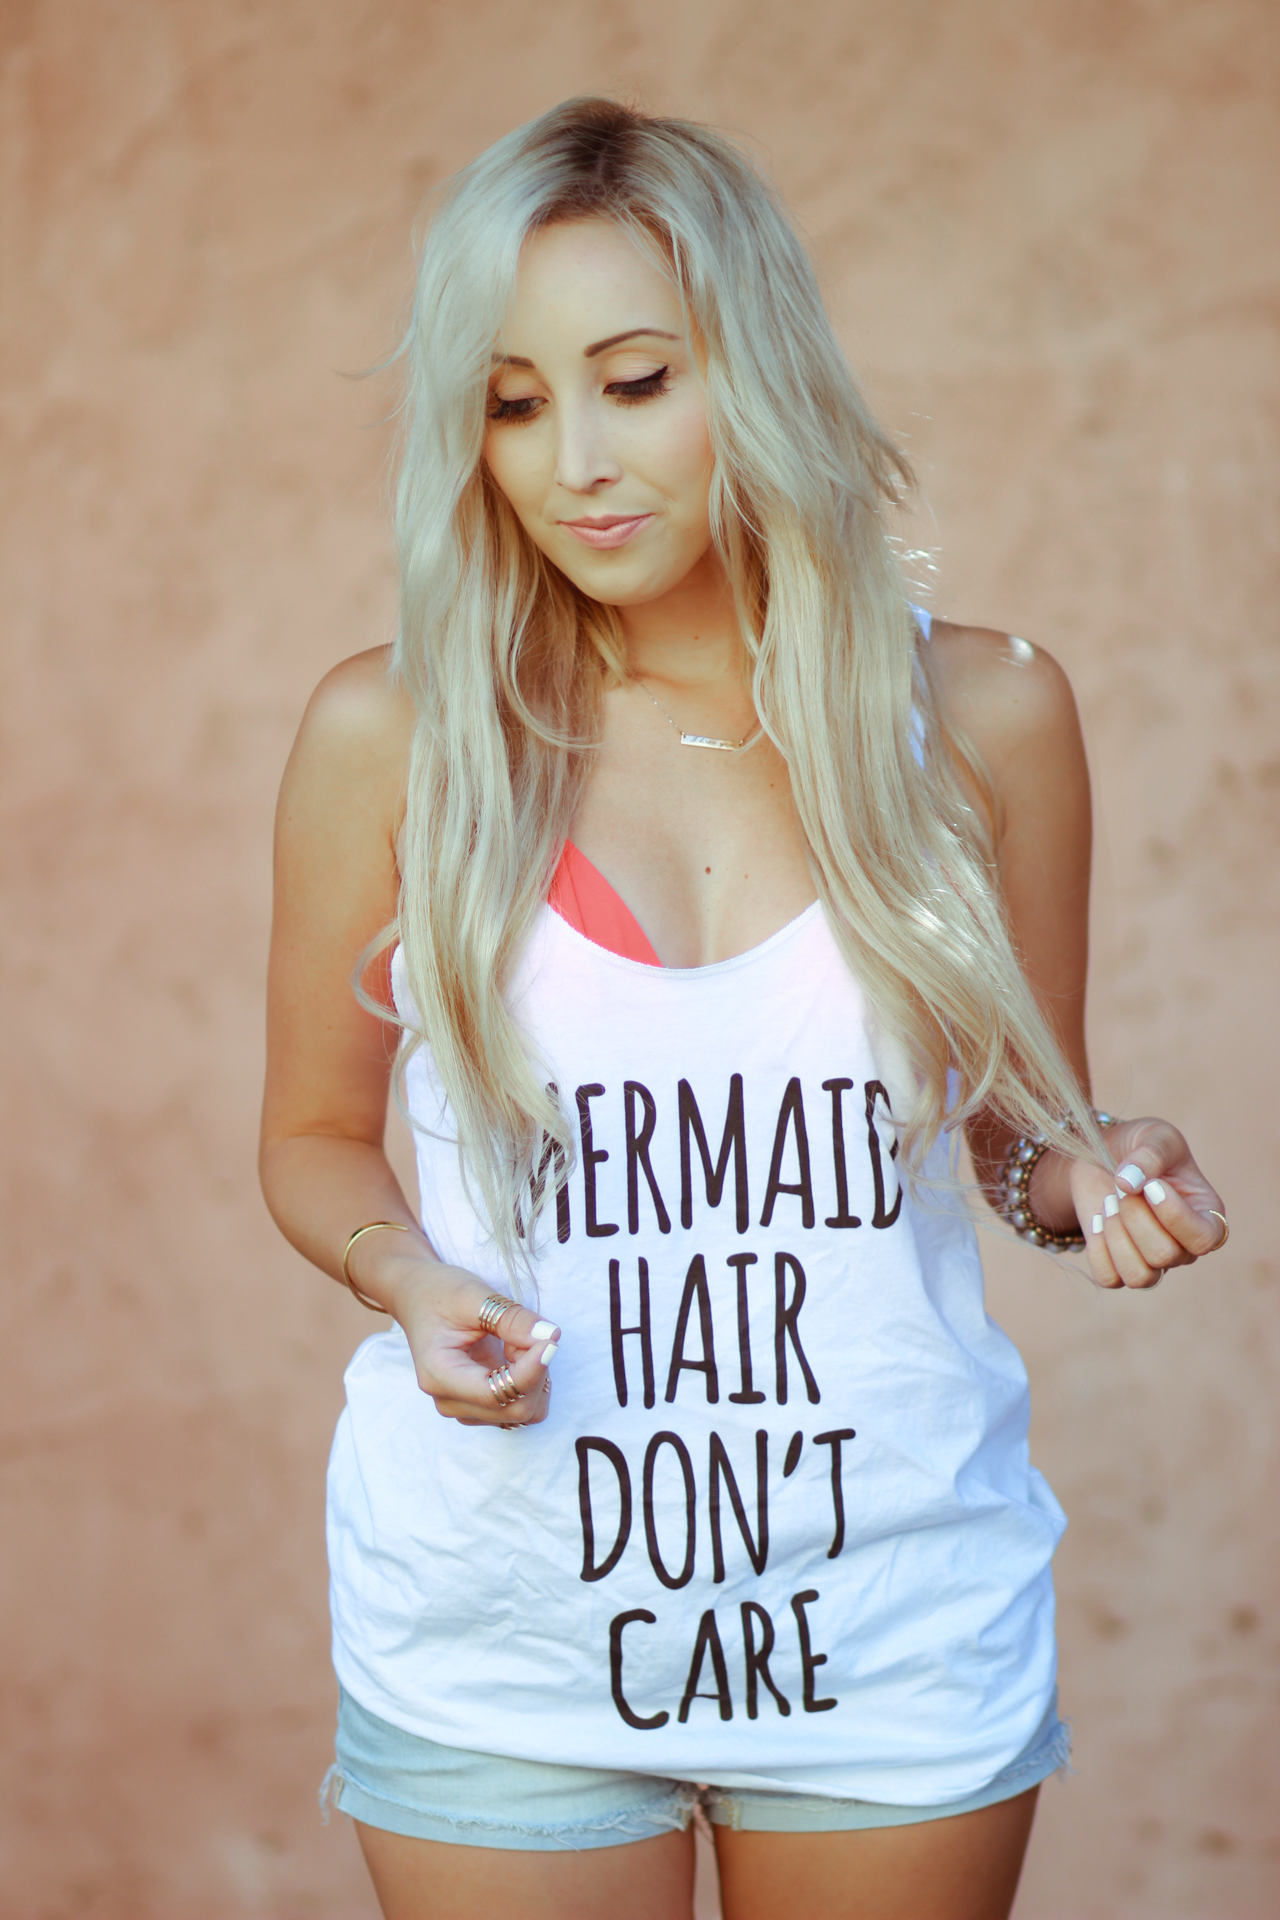 Hair Extensions from @irresistibleme | StyledByBlondie.com